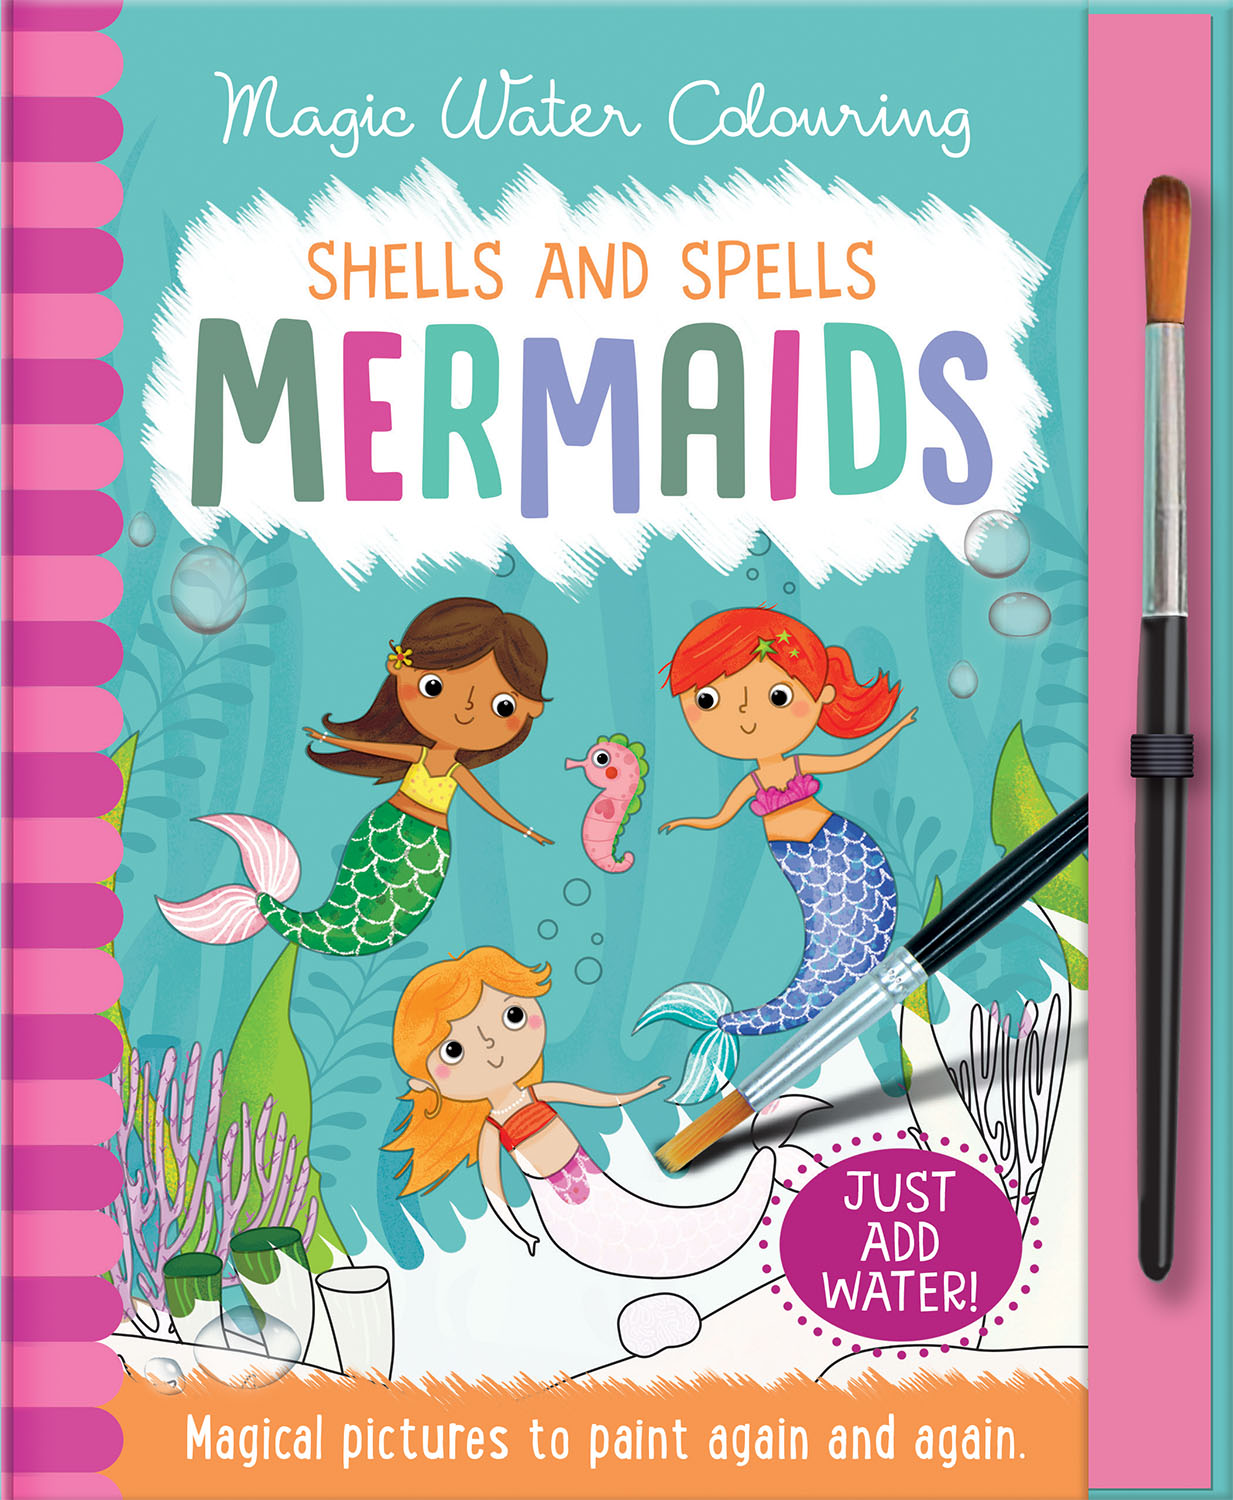 Shells and Spells - Mermaids